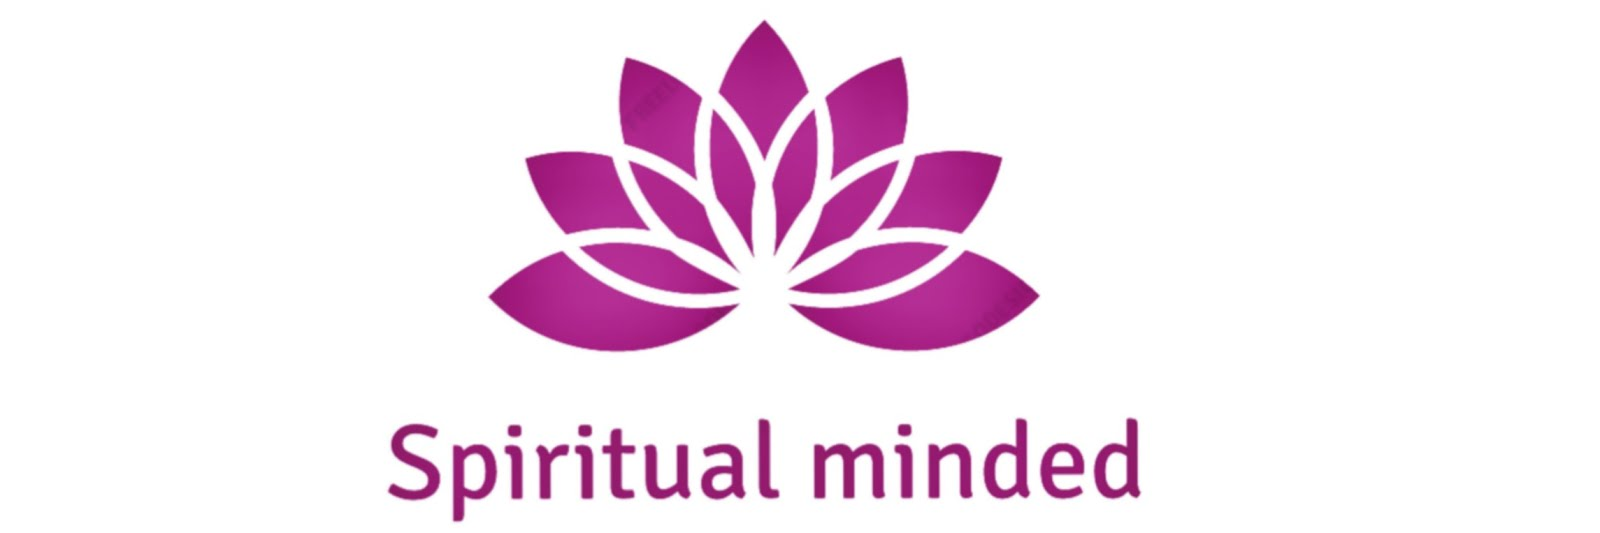 Spiritual Minded | Motivation, Positive thoughts, Success, Spirituality, Meditation